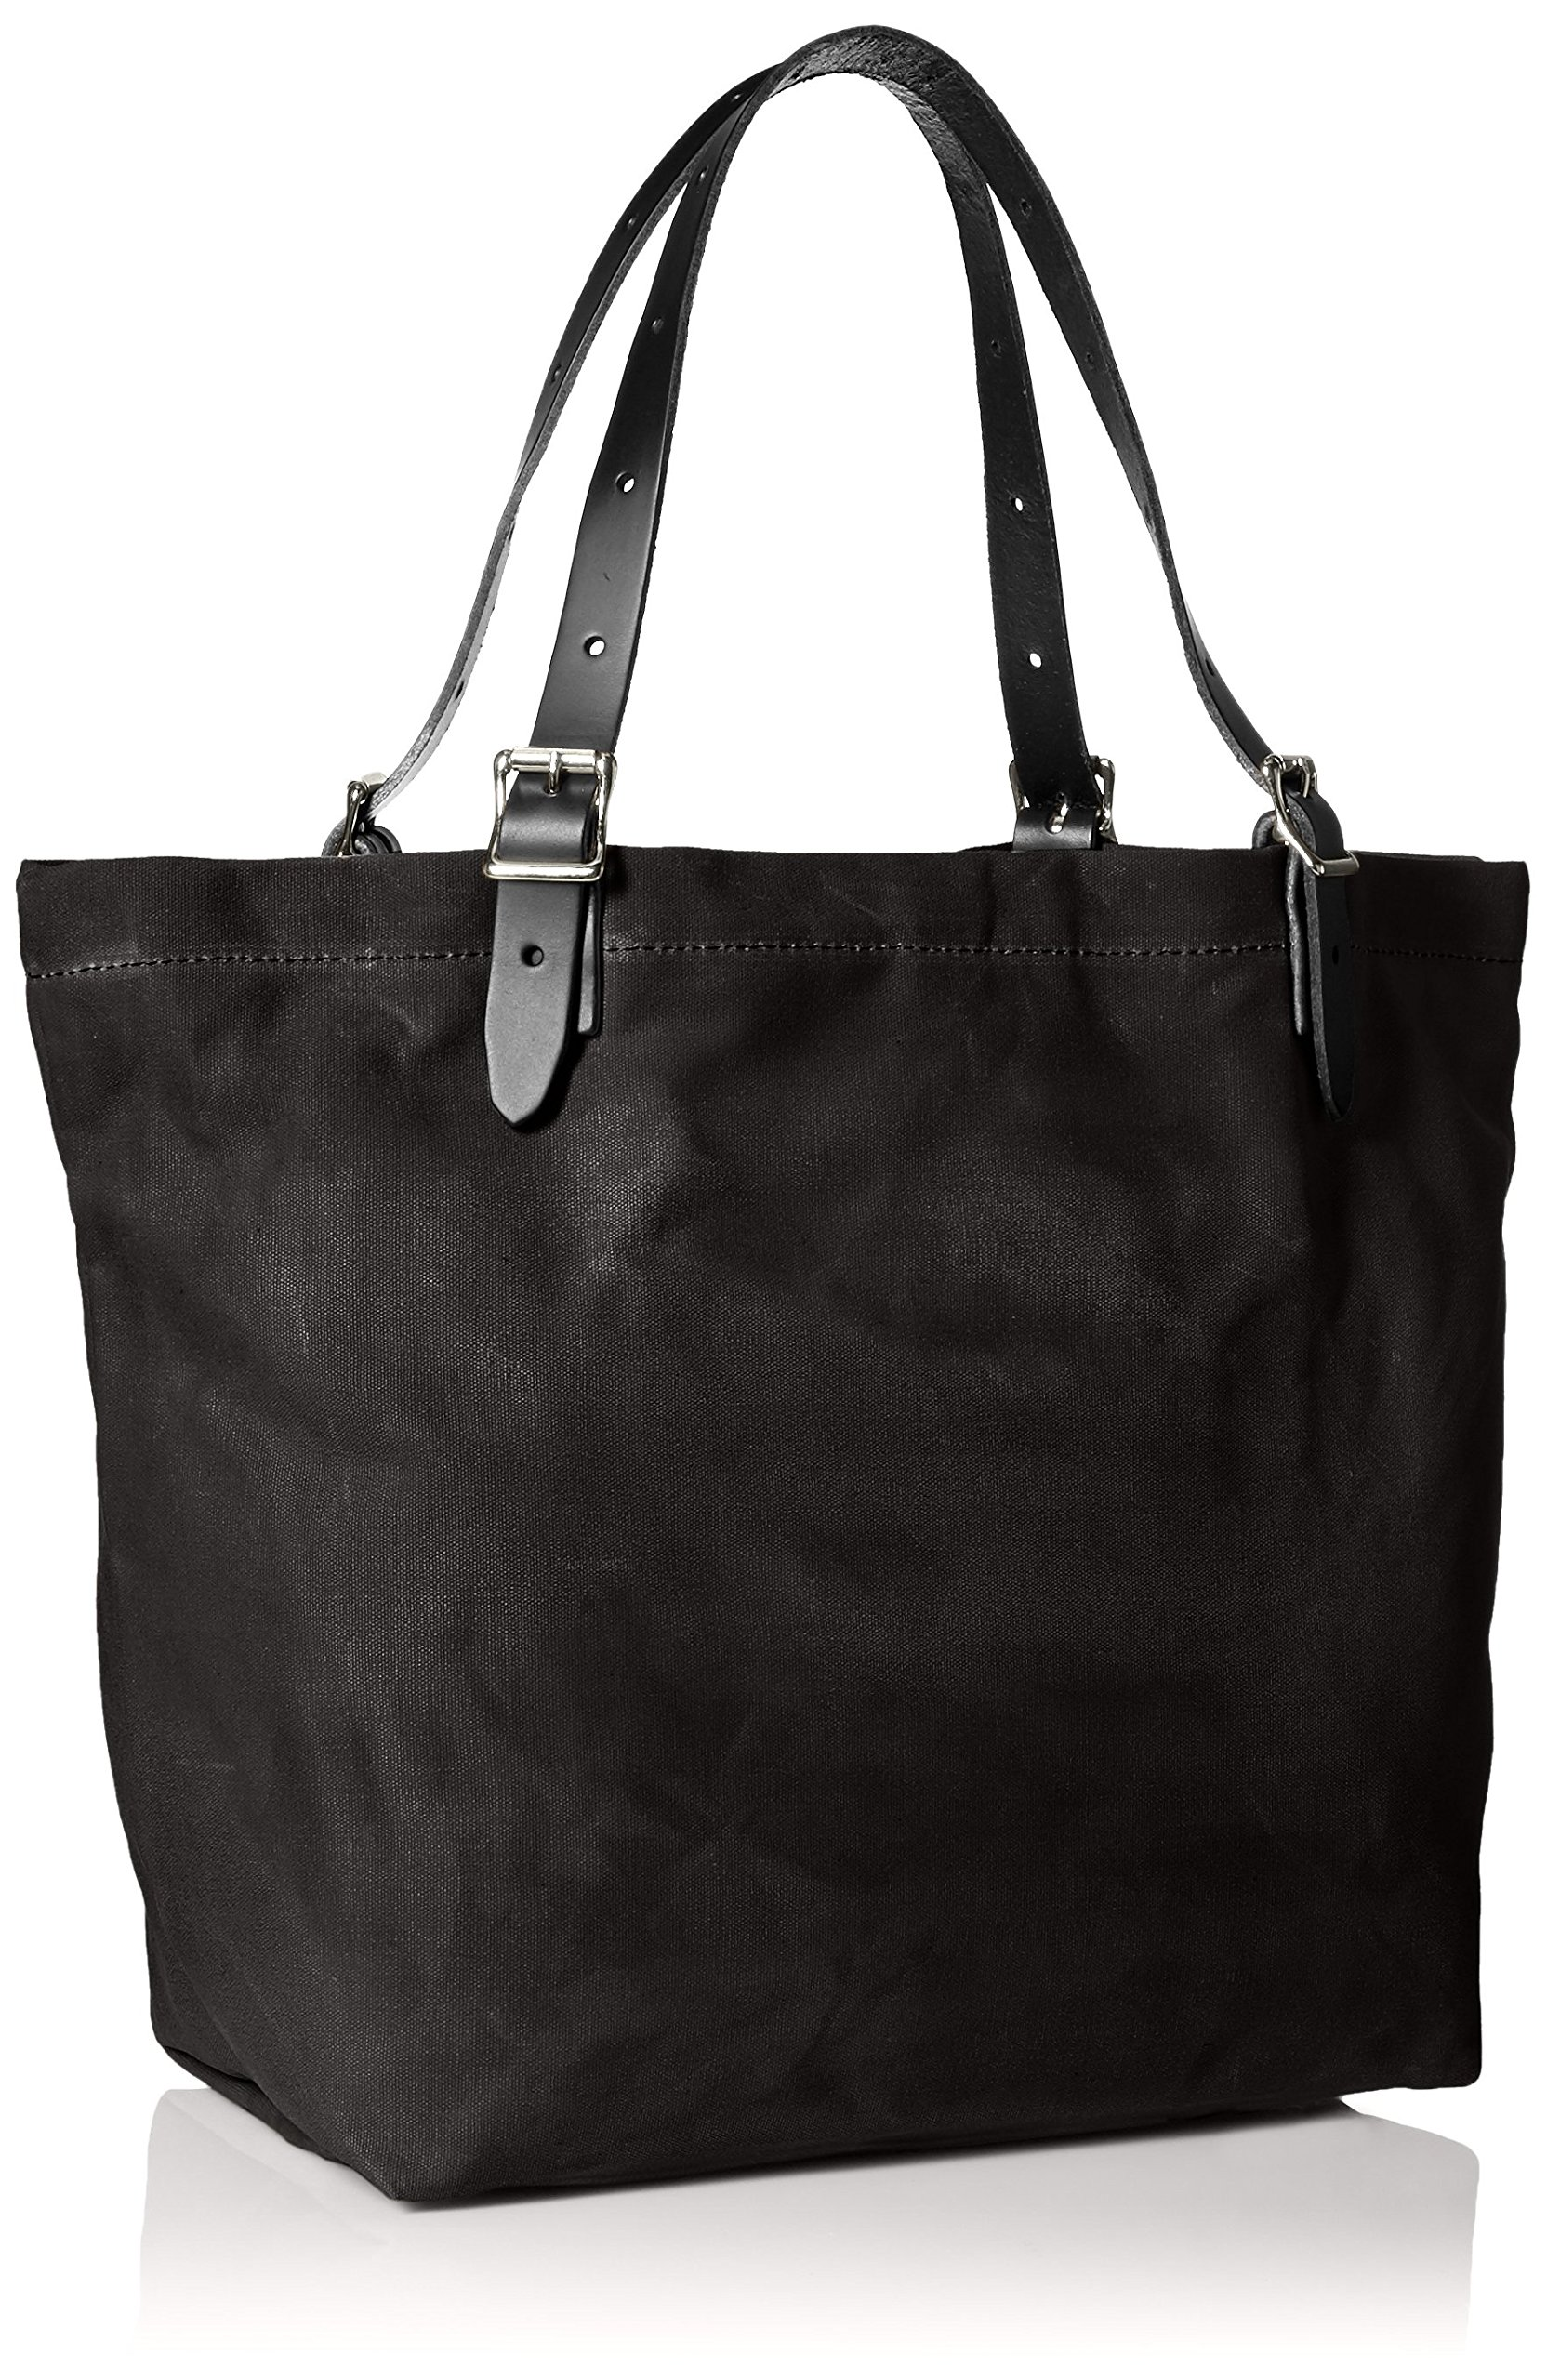 Duluth Pack Market Tote, Great Lakes, 14 x 18 x 9-Inch by Duluth Pack (Image #2)